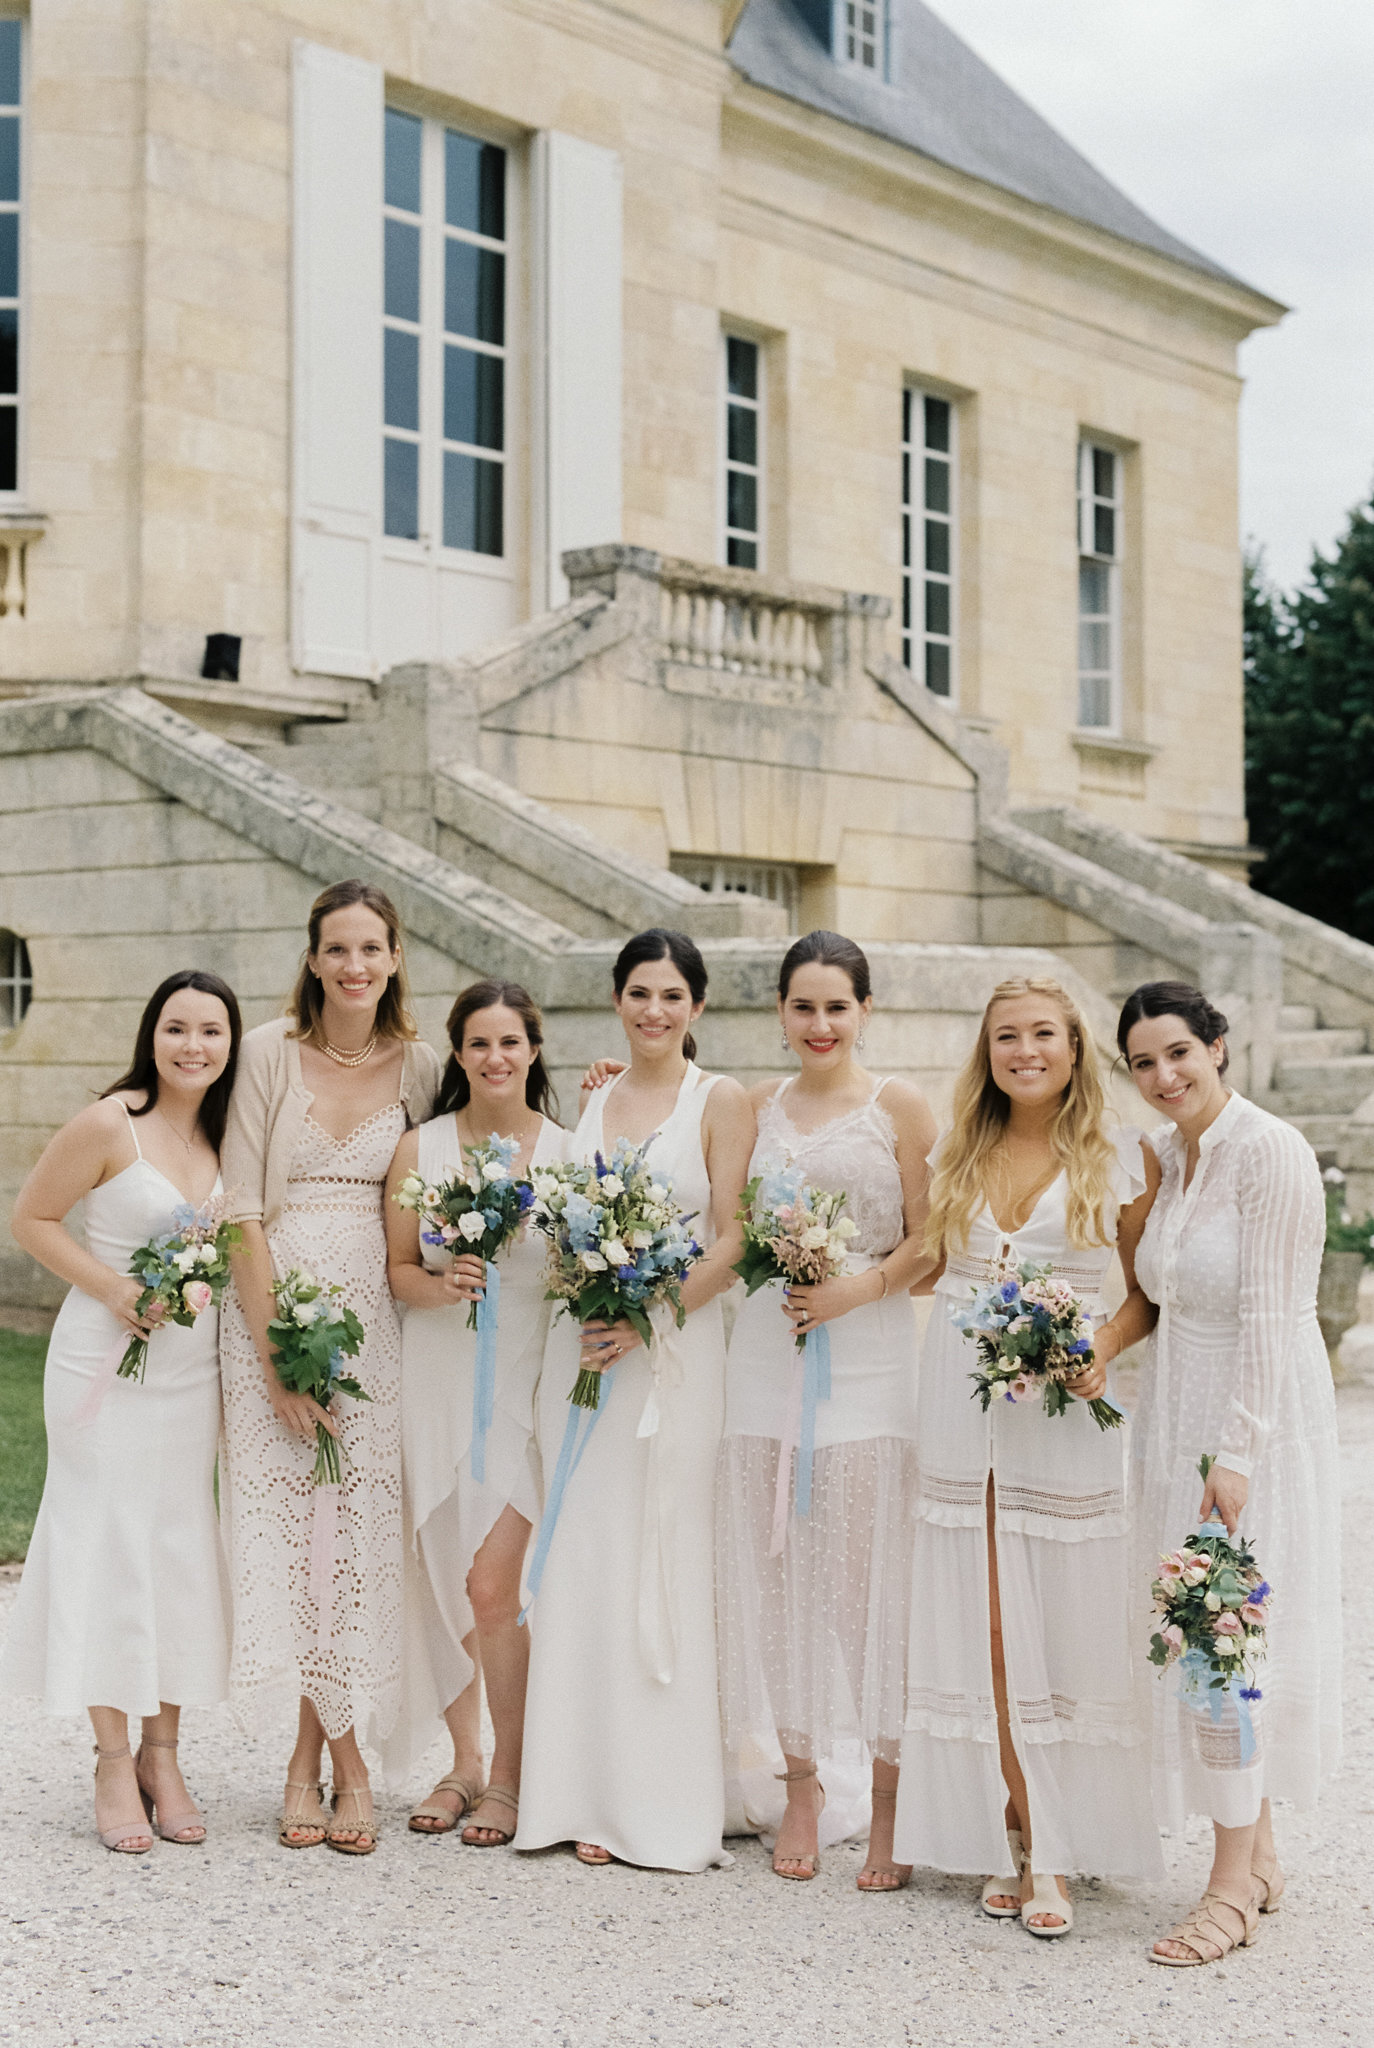 bride with bridesmaids in various white and off white dresses